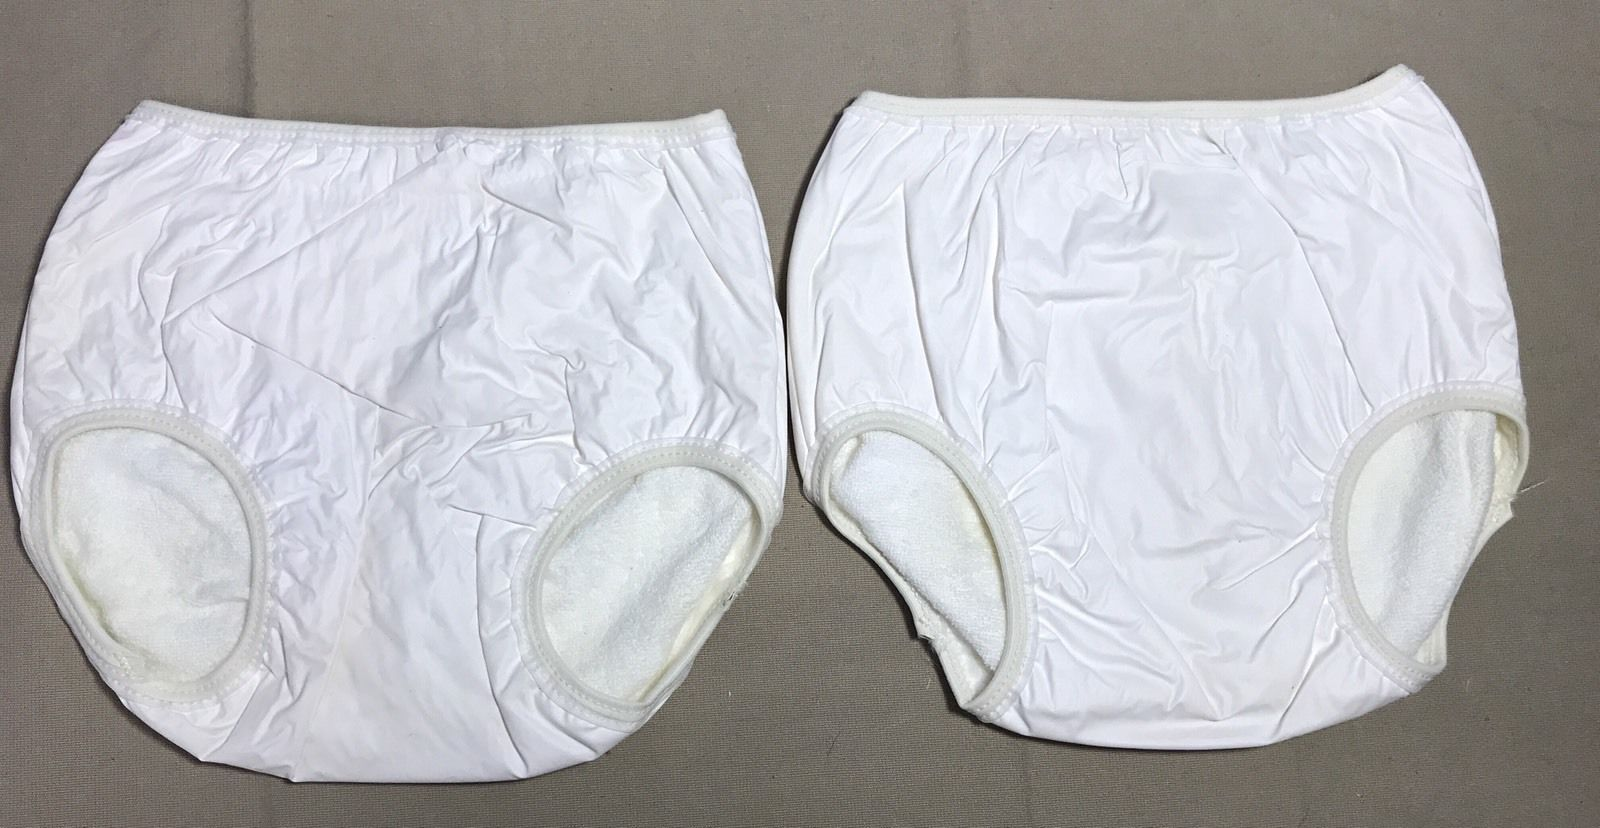 d8c7de387744 Old-fashioned all-in-one training pants! Rubber pants with terry towel  lining